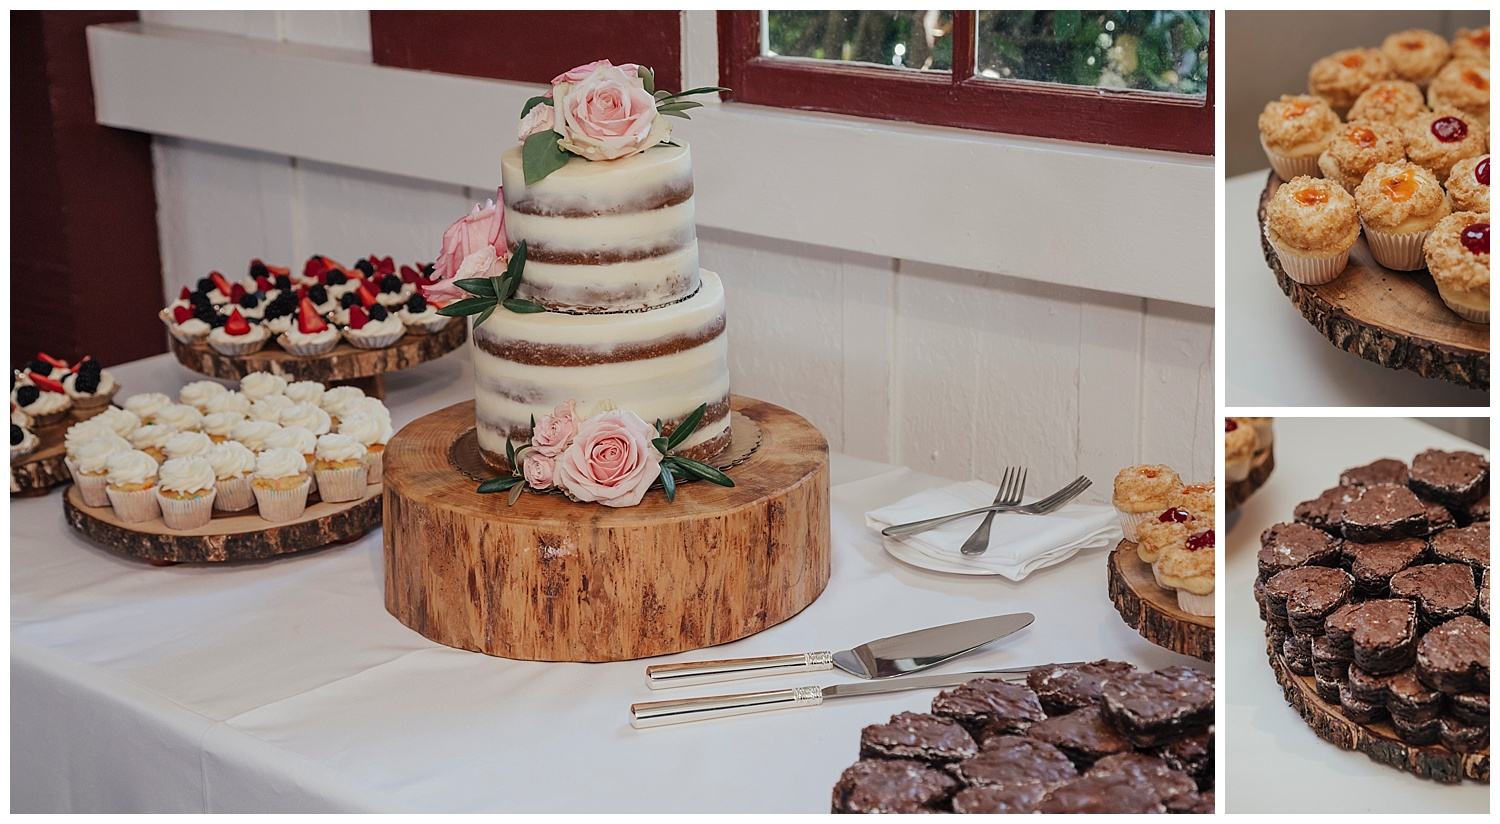 dessert-table-wedding-cake-mission-ranch-carol-oliva-photography.jpg